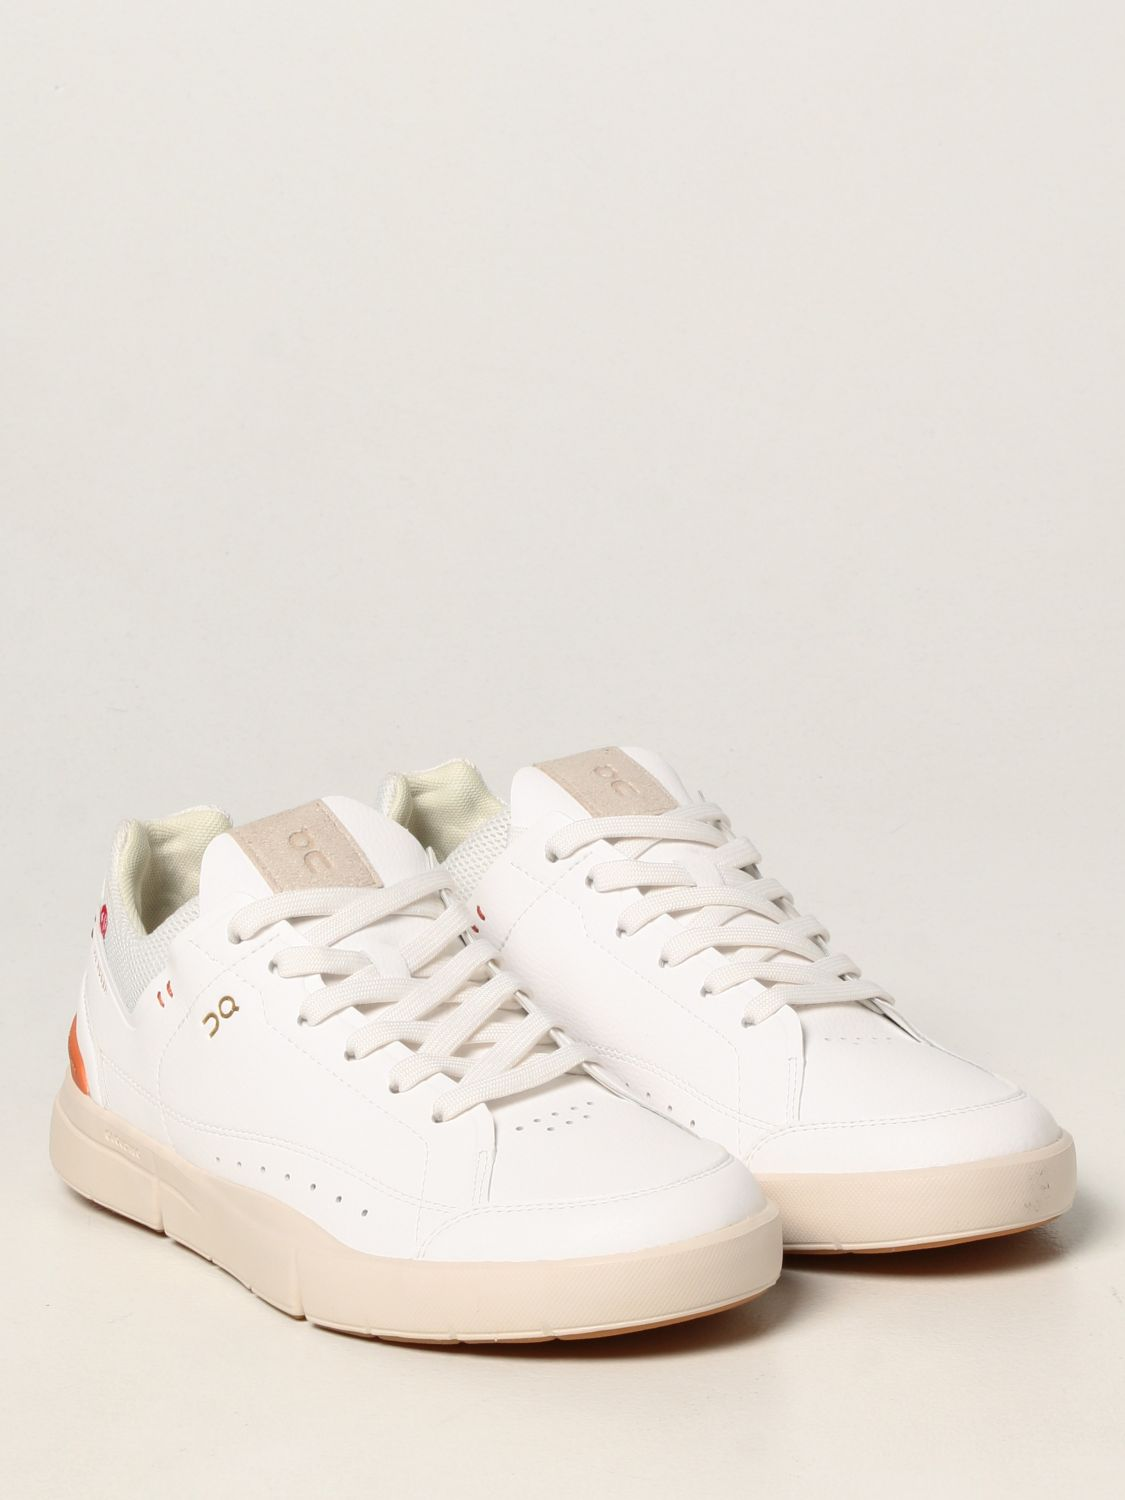 Sneakers The Roger: Sneakers Centre Court The Roger in pelle ecologica e mesh bianco 2